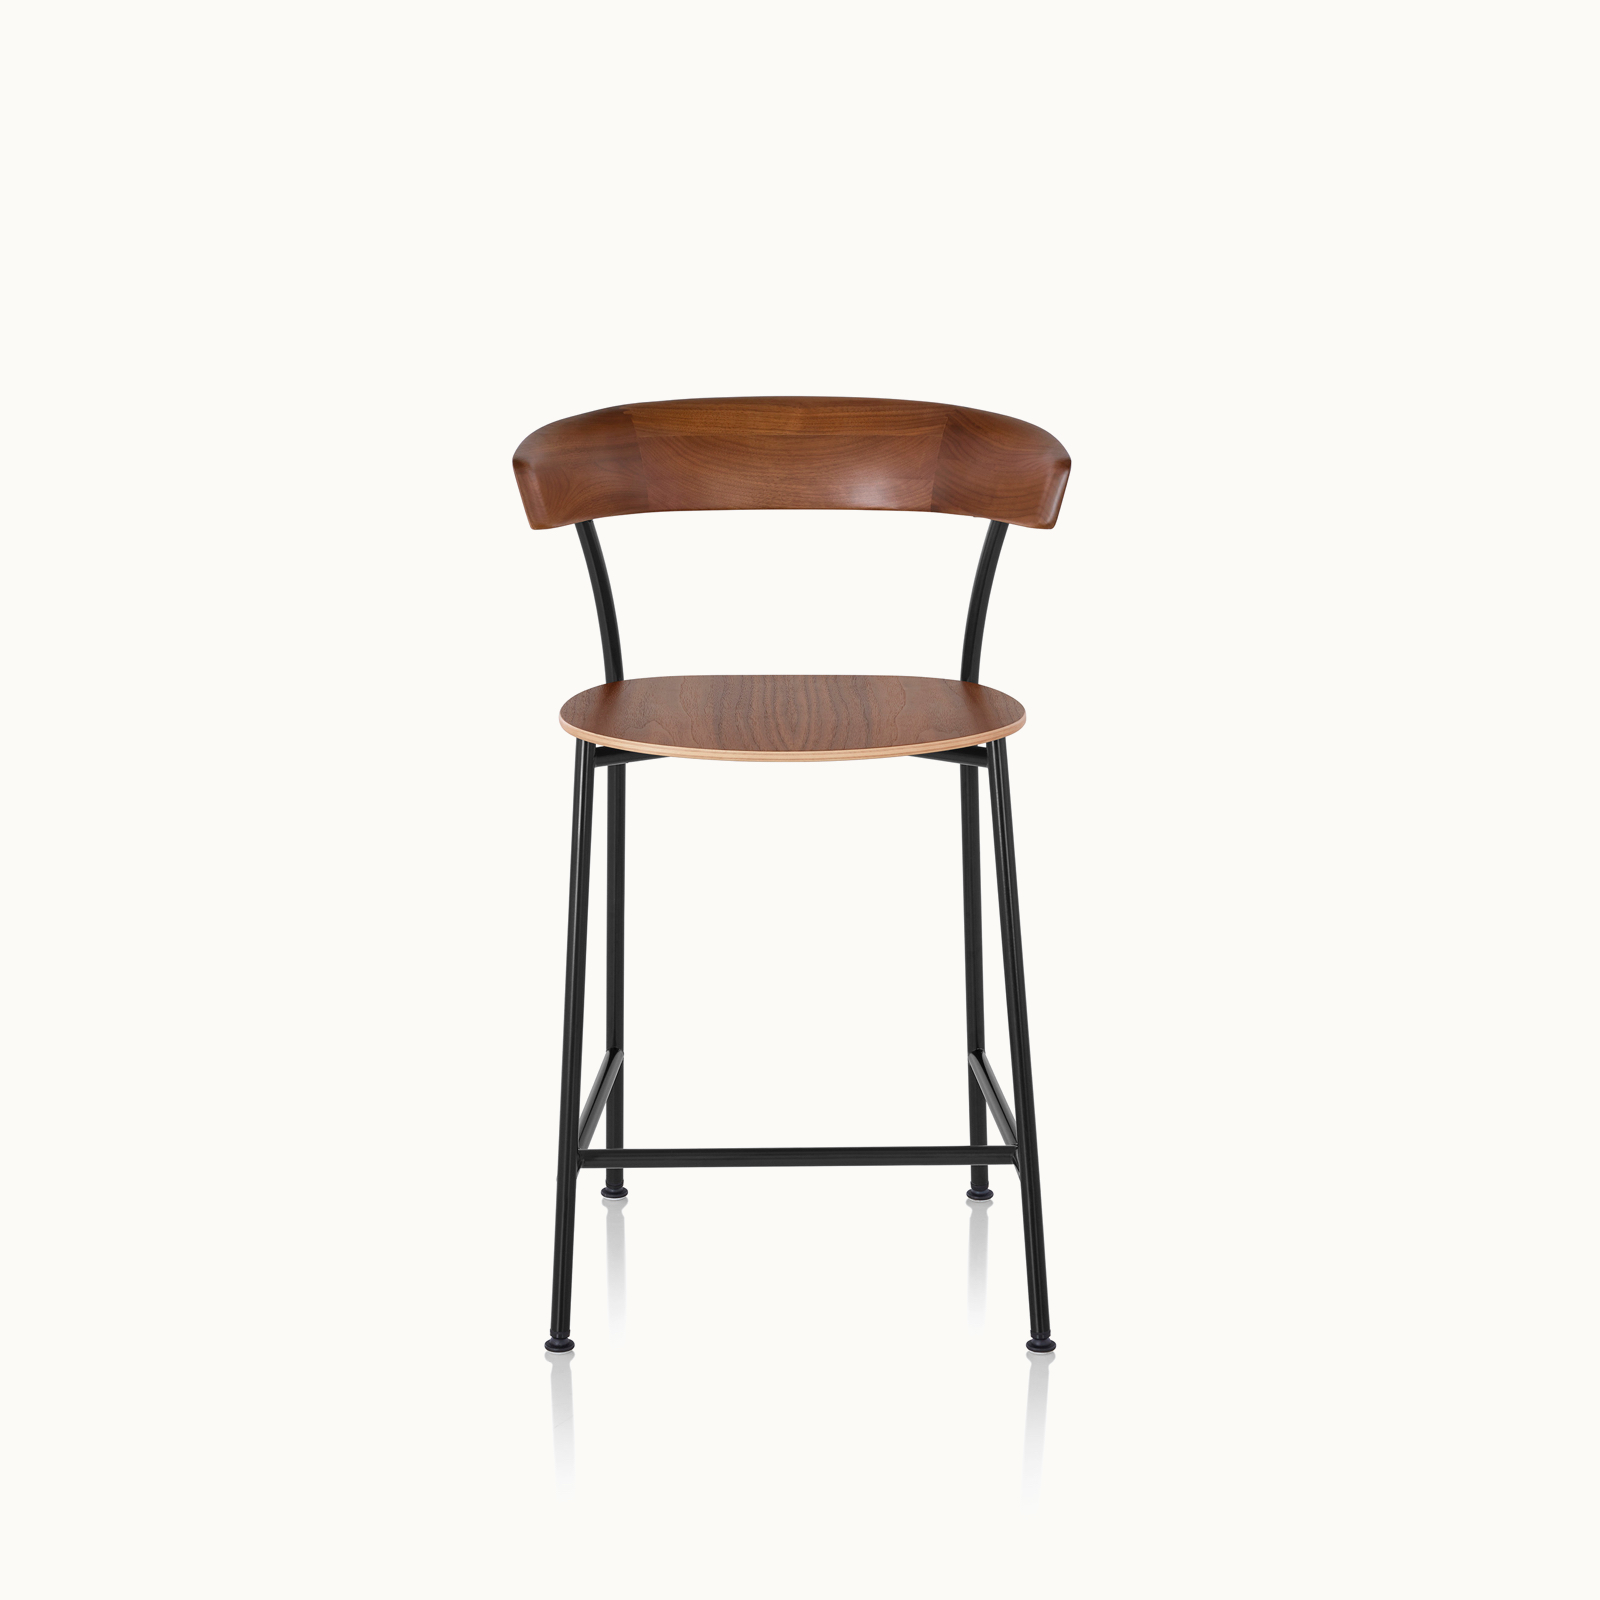 A Leeway Stool with a black metal frame and a wood backrest and seat in a medium finish, viewed from the front.